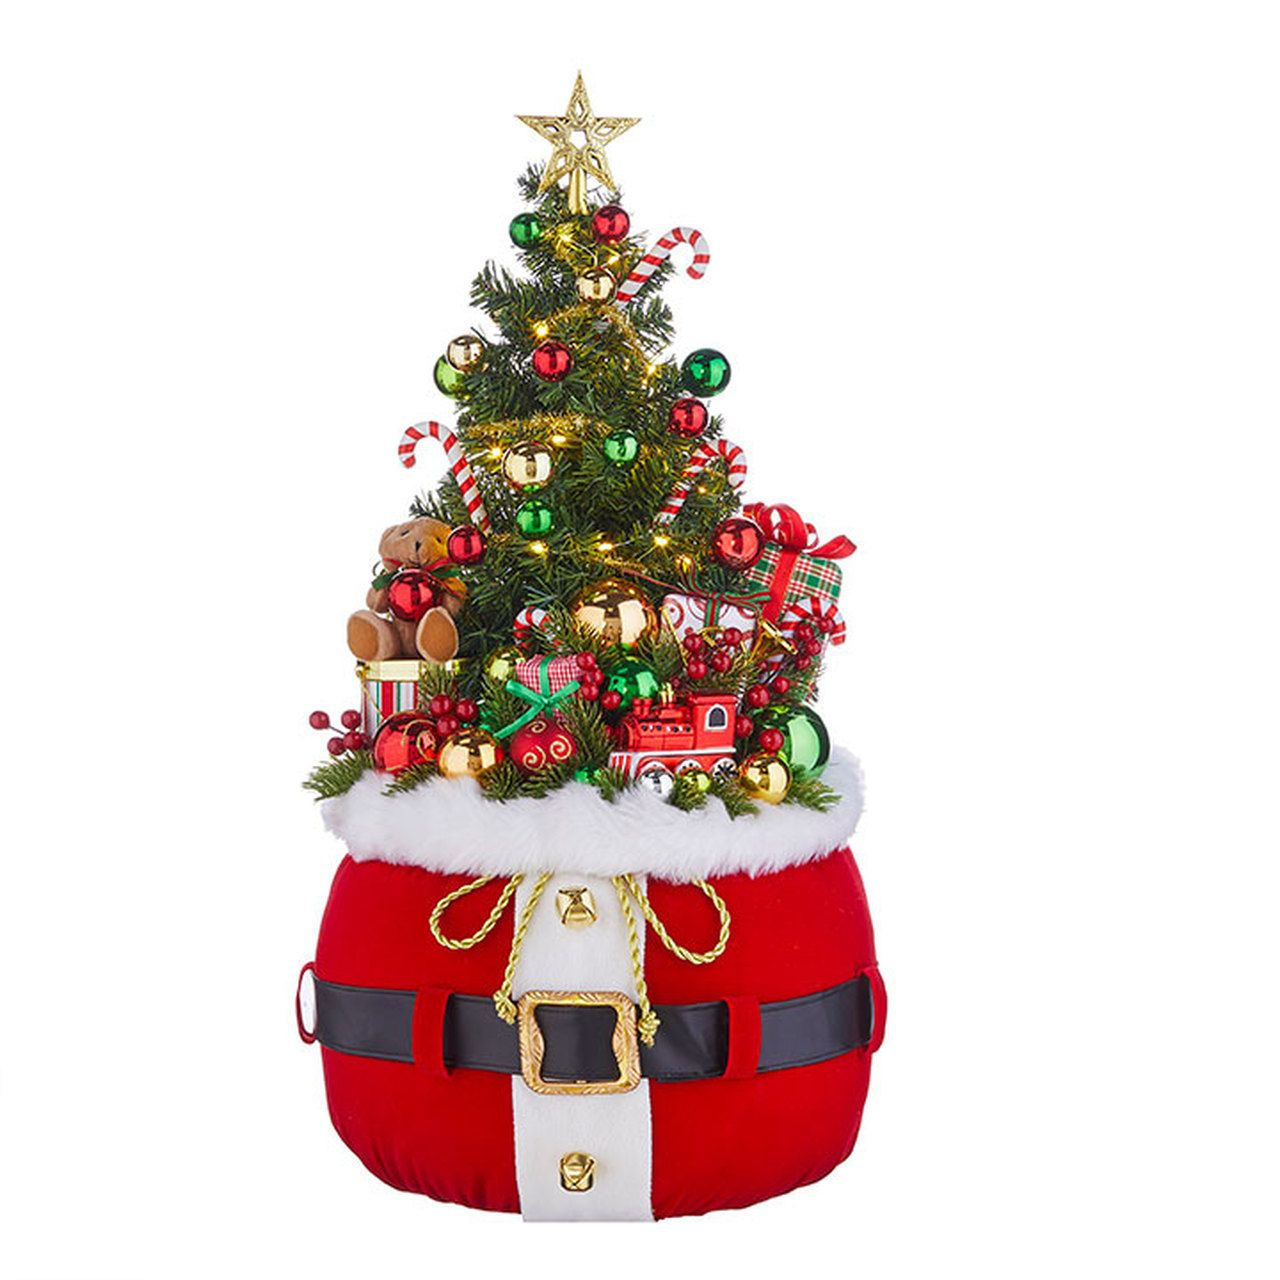 Raz 32 Large Lighted Santa Belt Bag With Tree And Toy Christmas Decoration Decorating With Christmas Lights Christmas Decorations Indoor Christmas Decorations